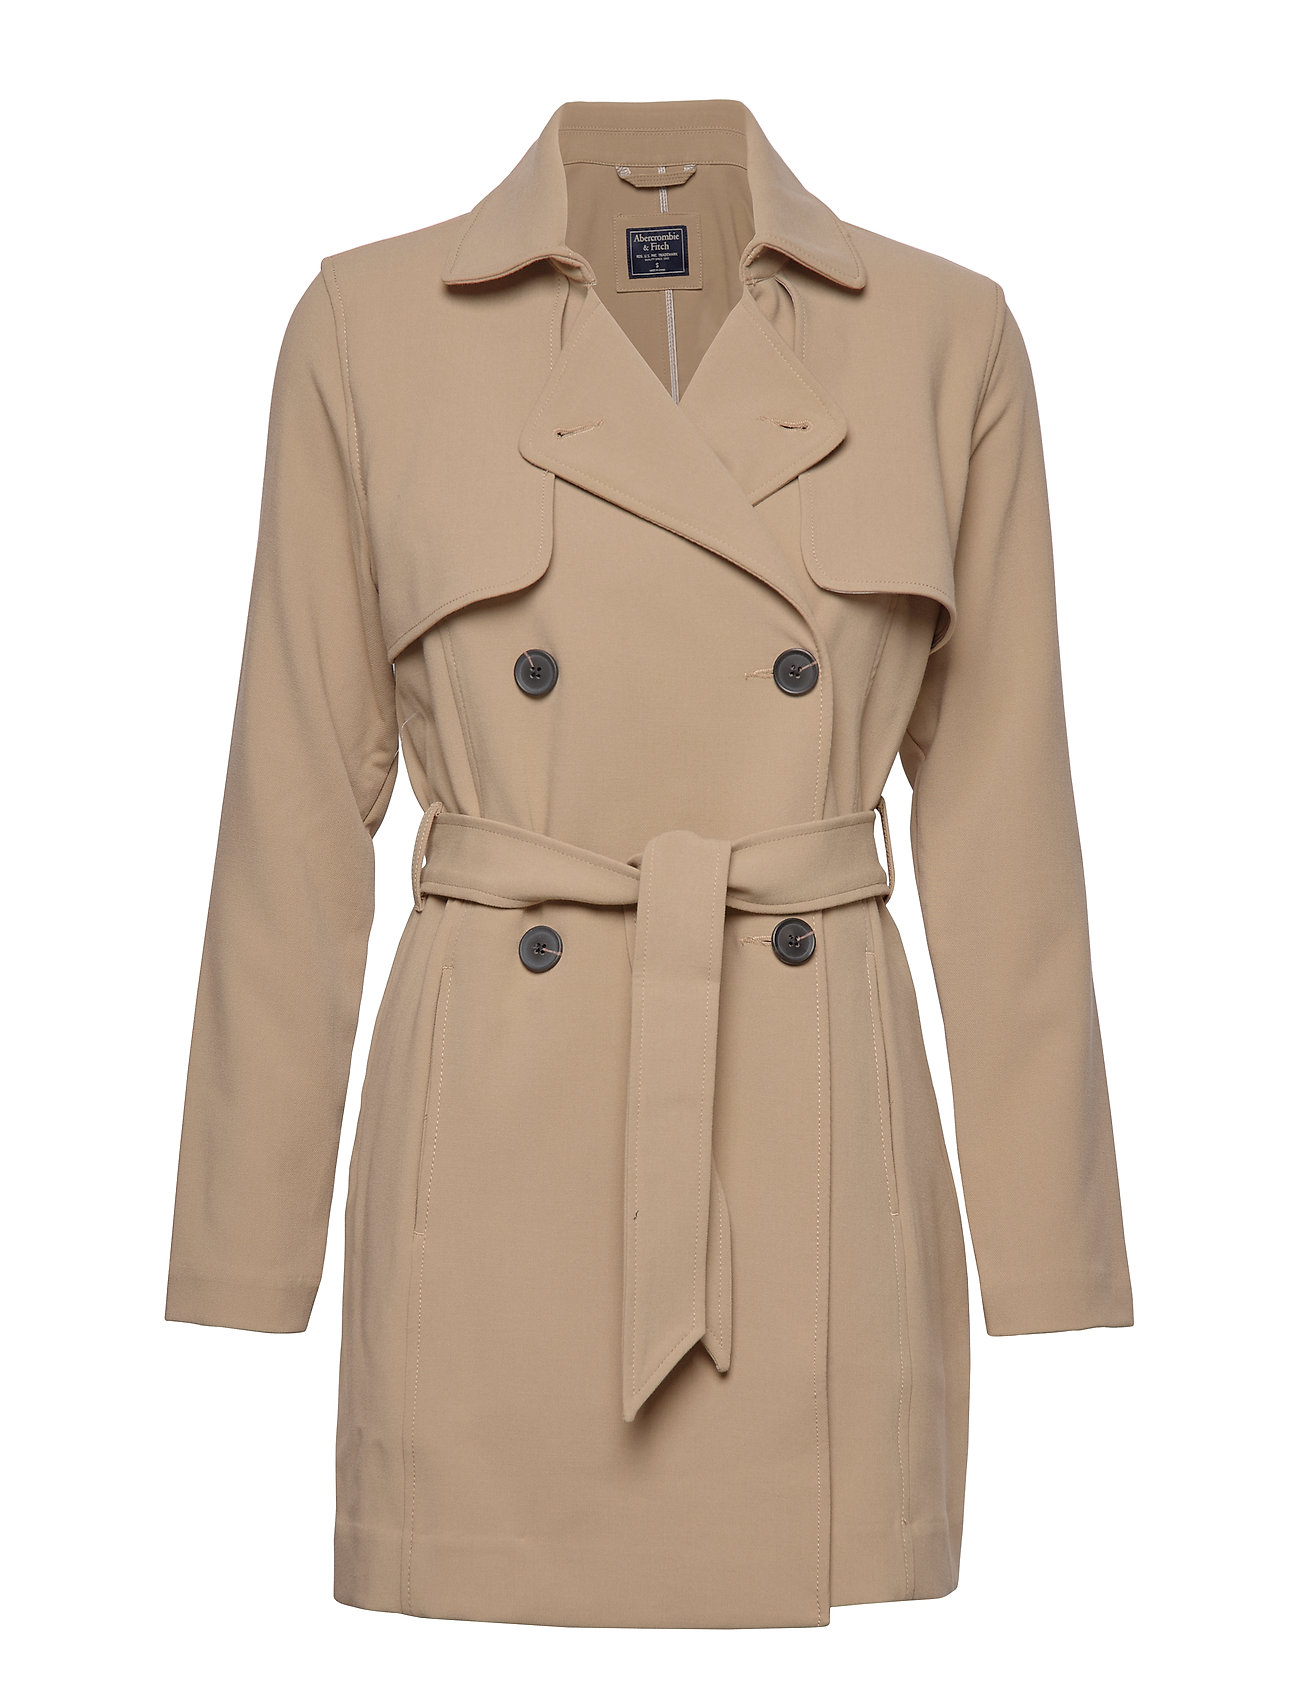 Abercrombie & Fitch Drapey Trench - LIGHT BROWN DD